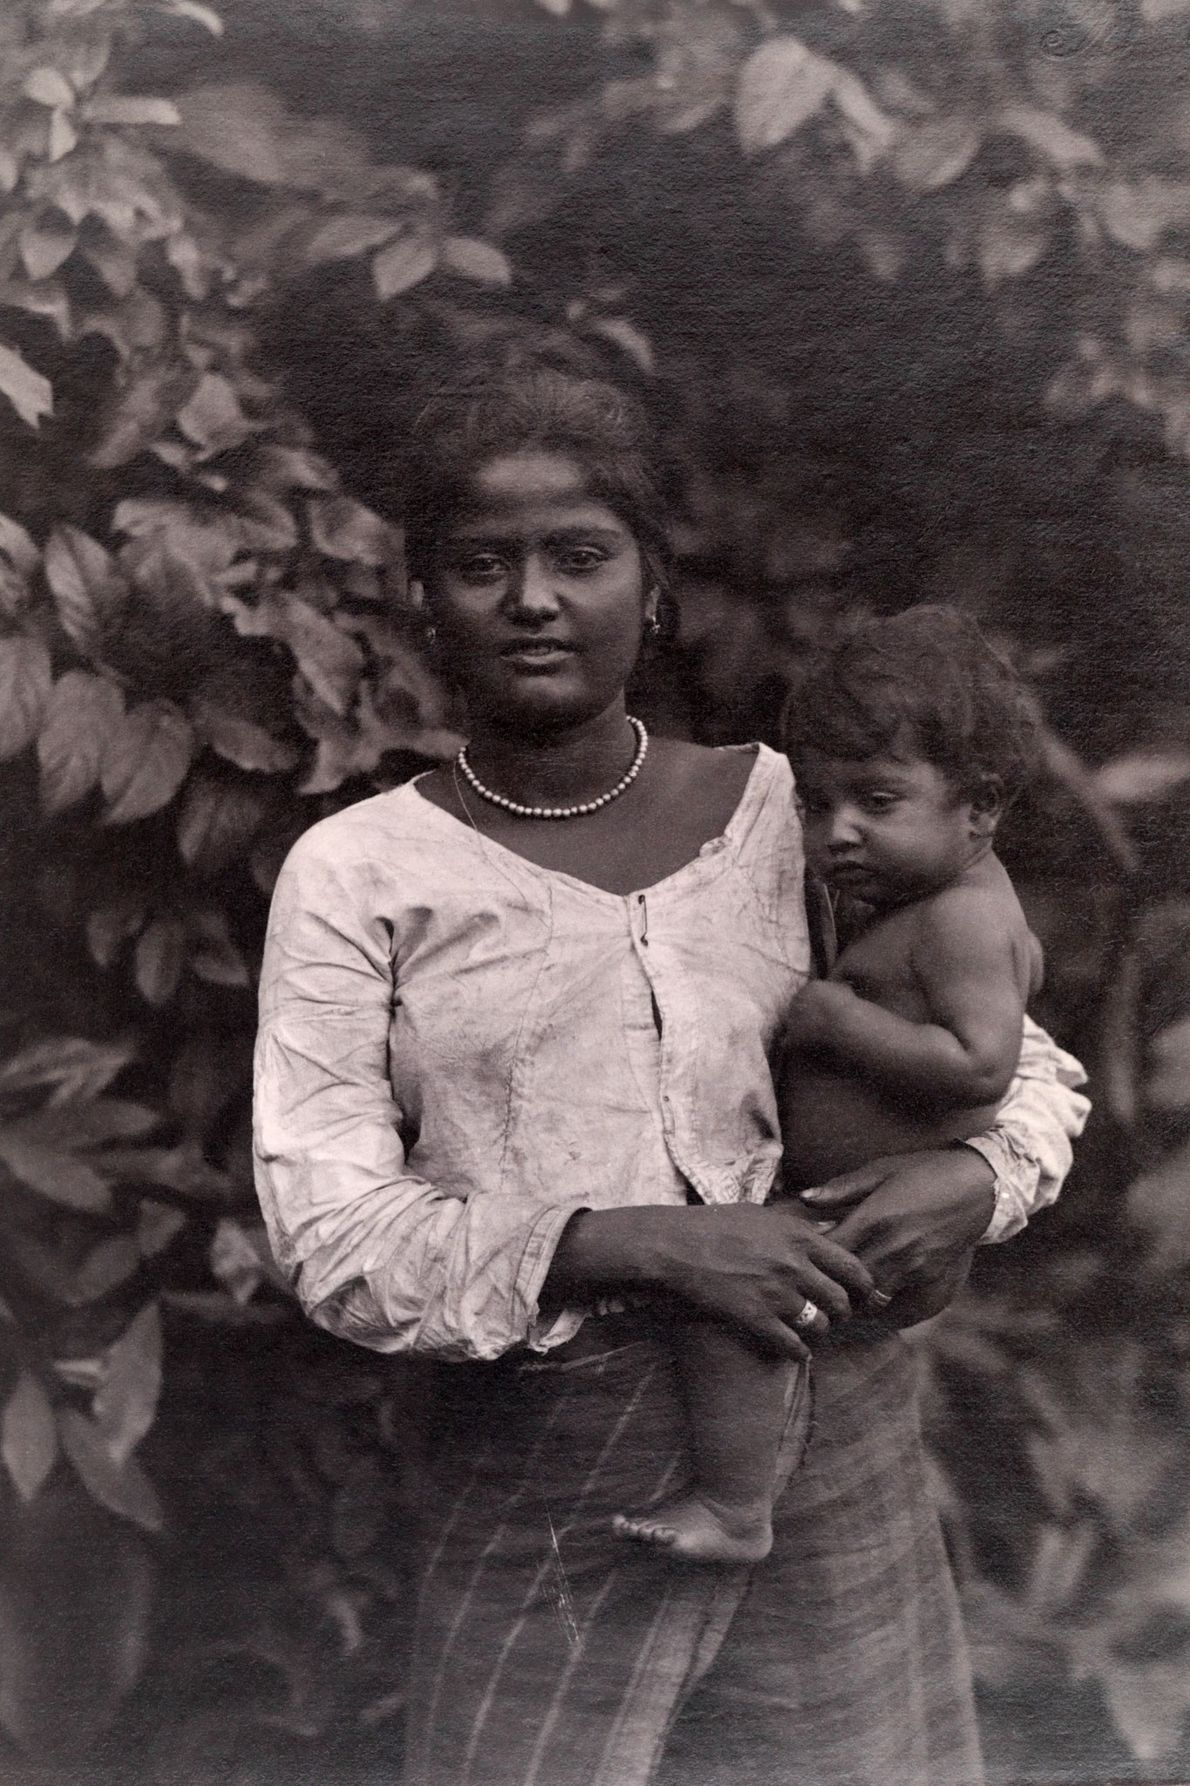 A Ceylonese mother rests a child on her hip.